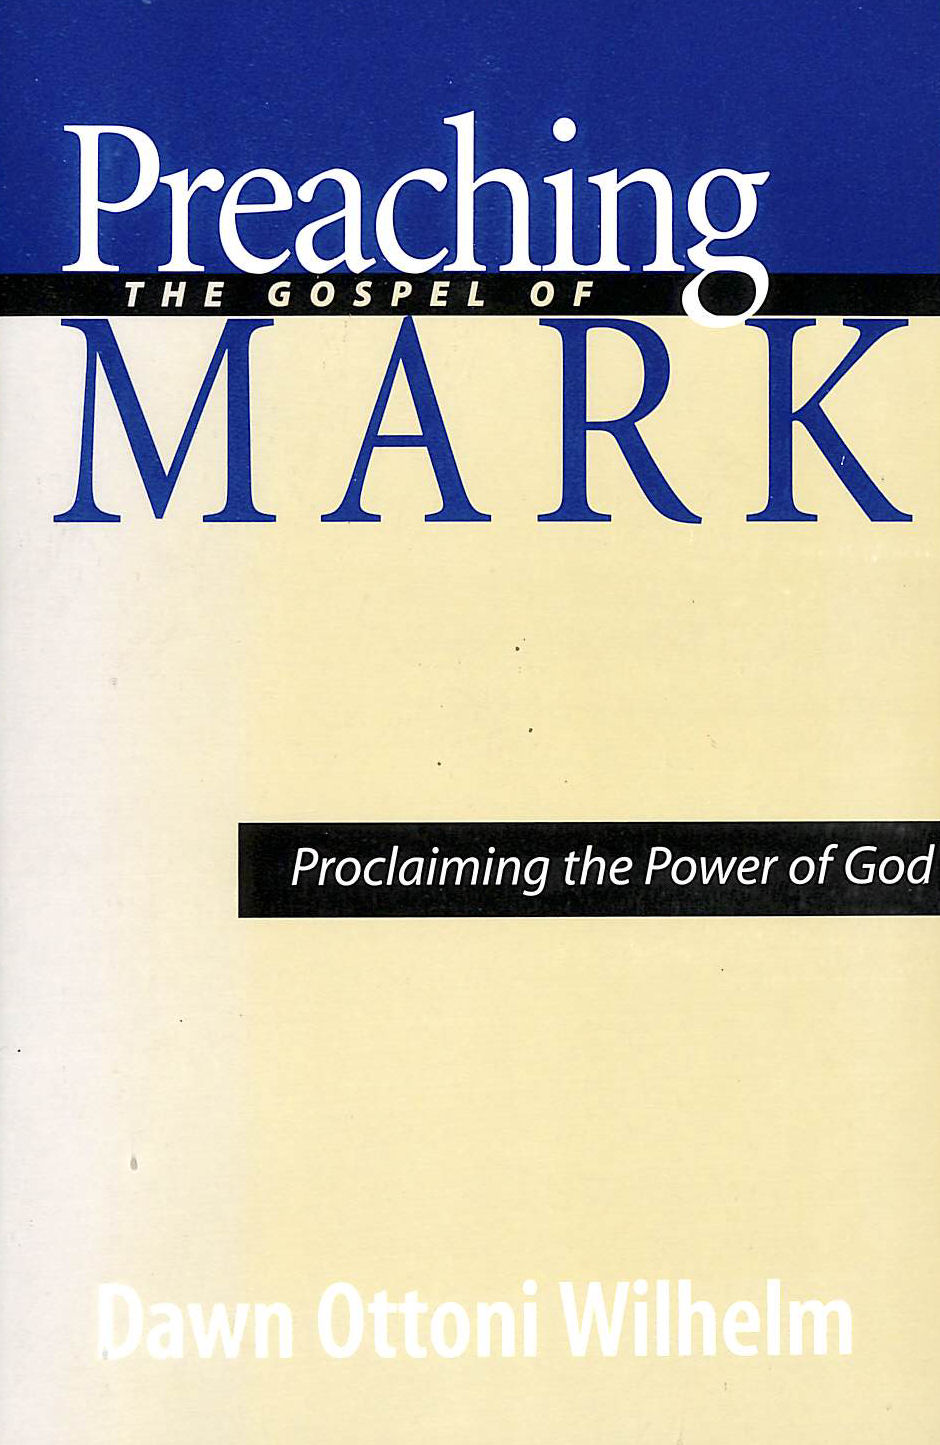 Image for Preaching the Gospel of Mark: Proclaiming the Power of God